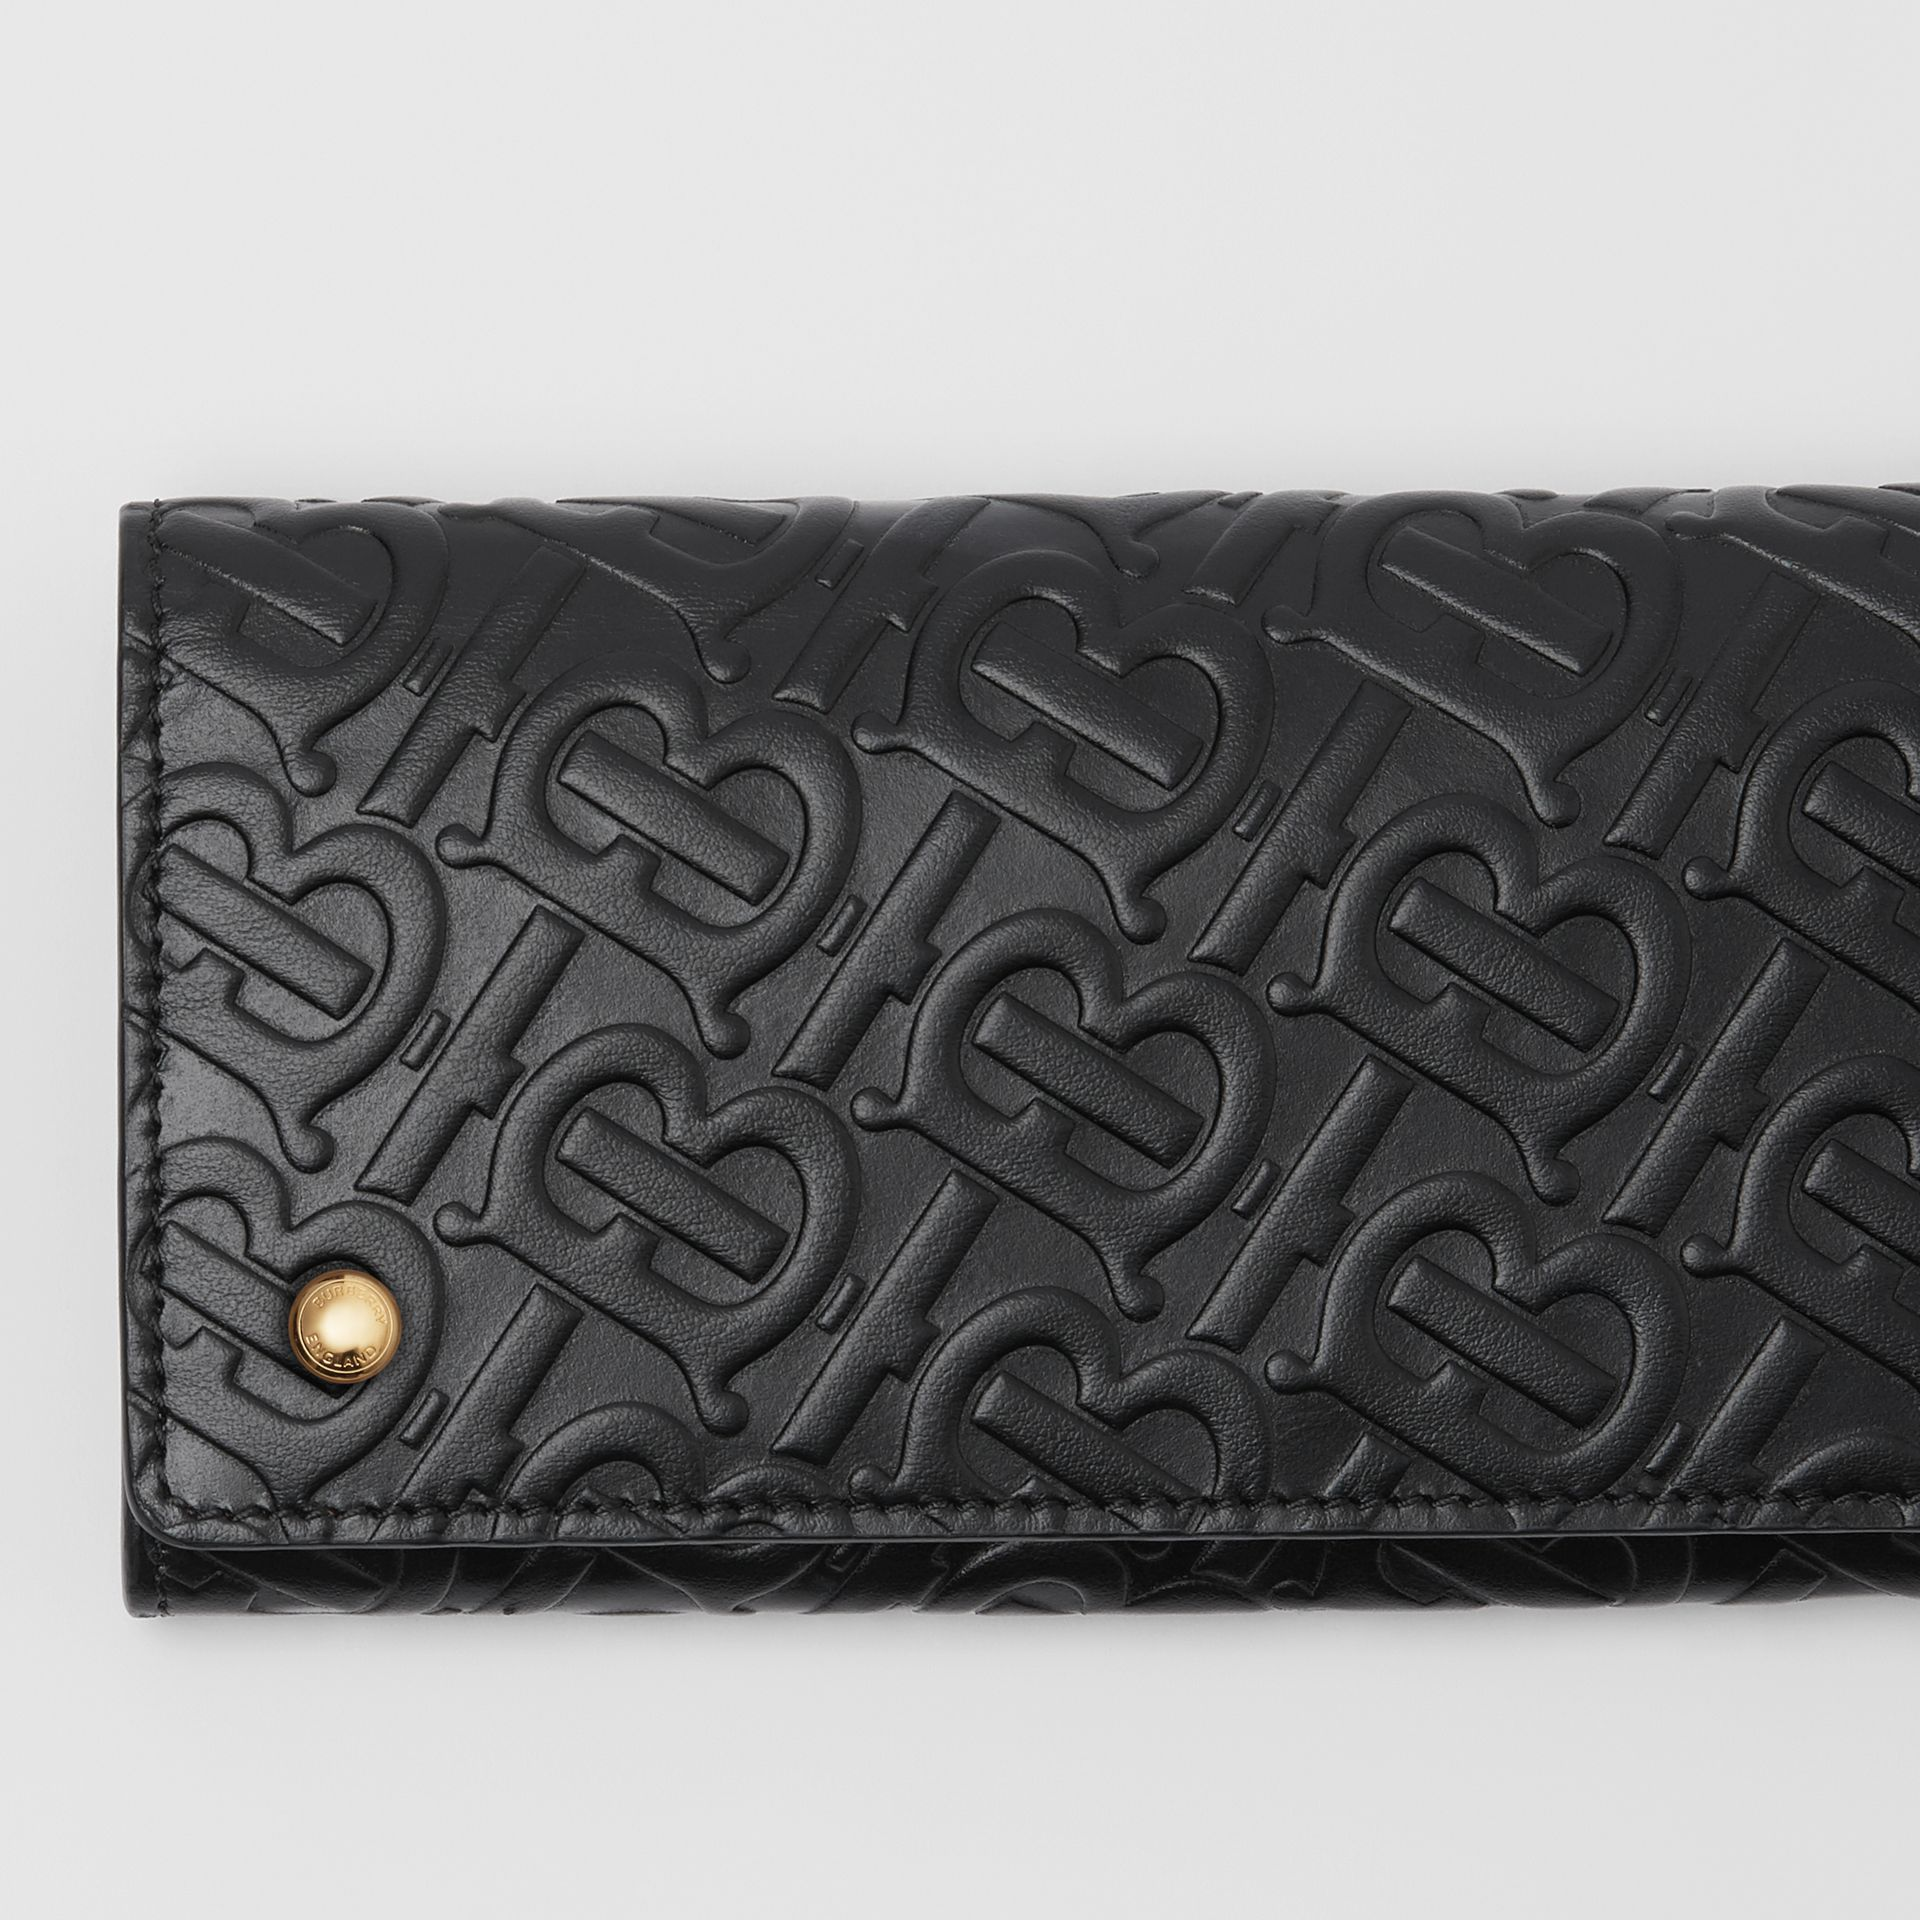 Monogram Leather Continental Wallet in Black - Women | Burberry Singapore - gallery image 1